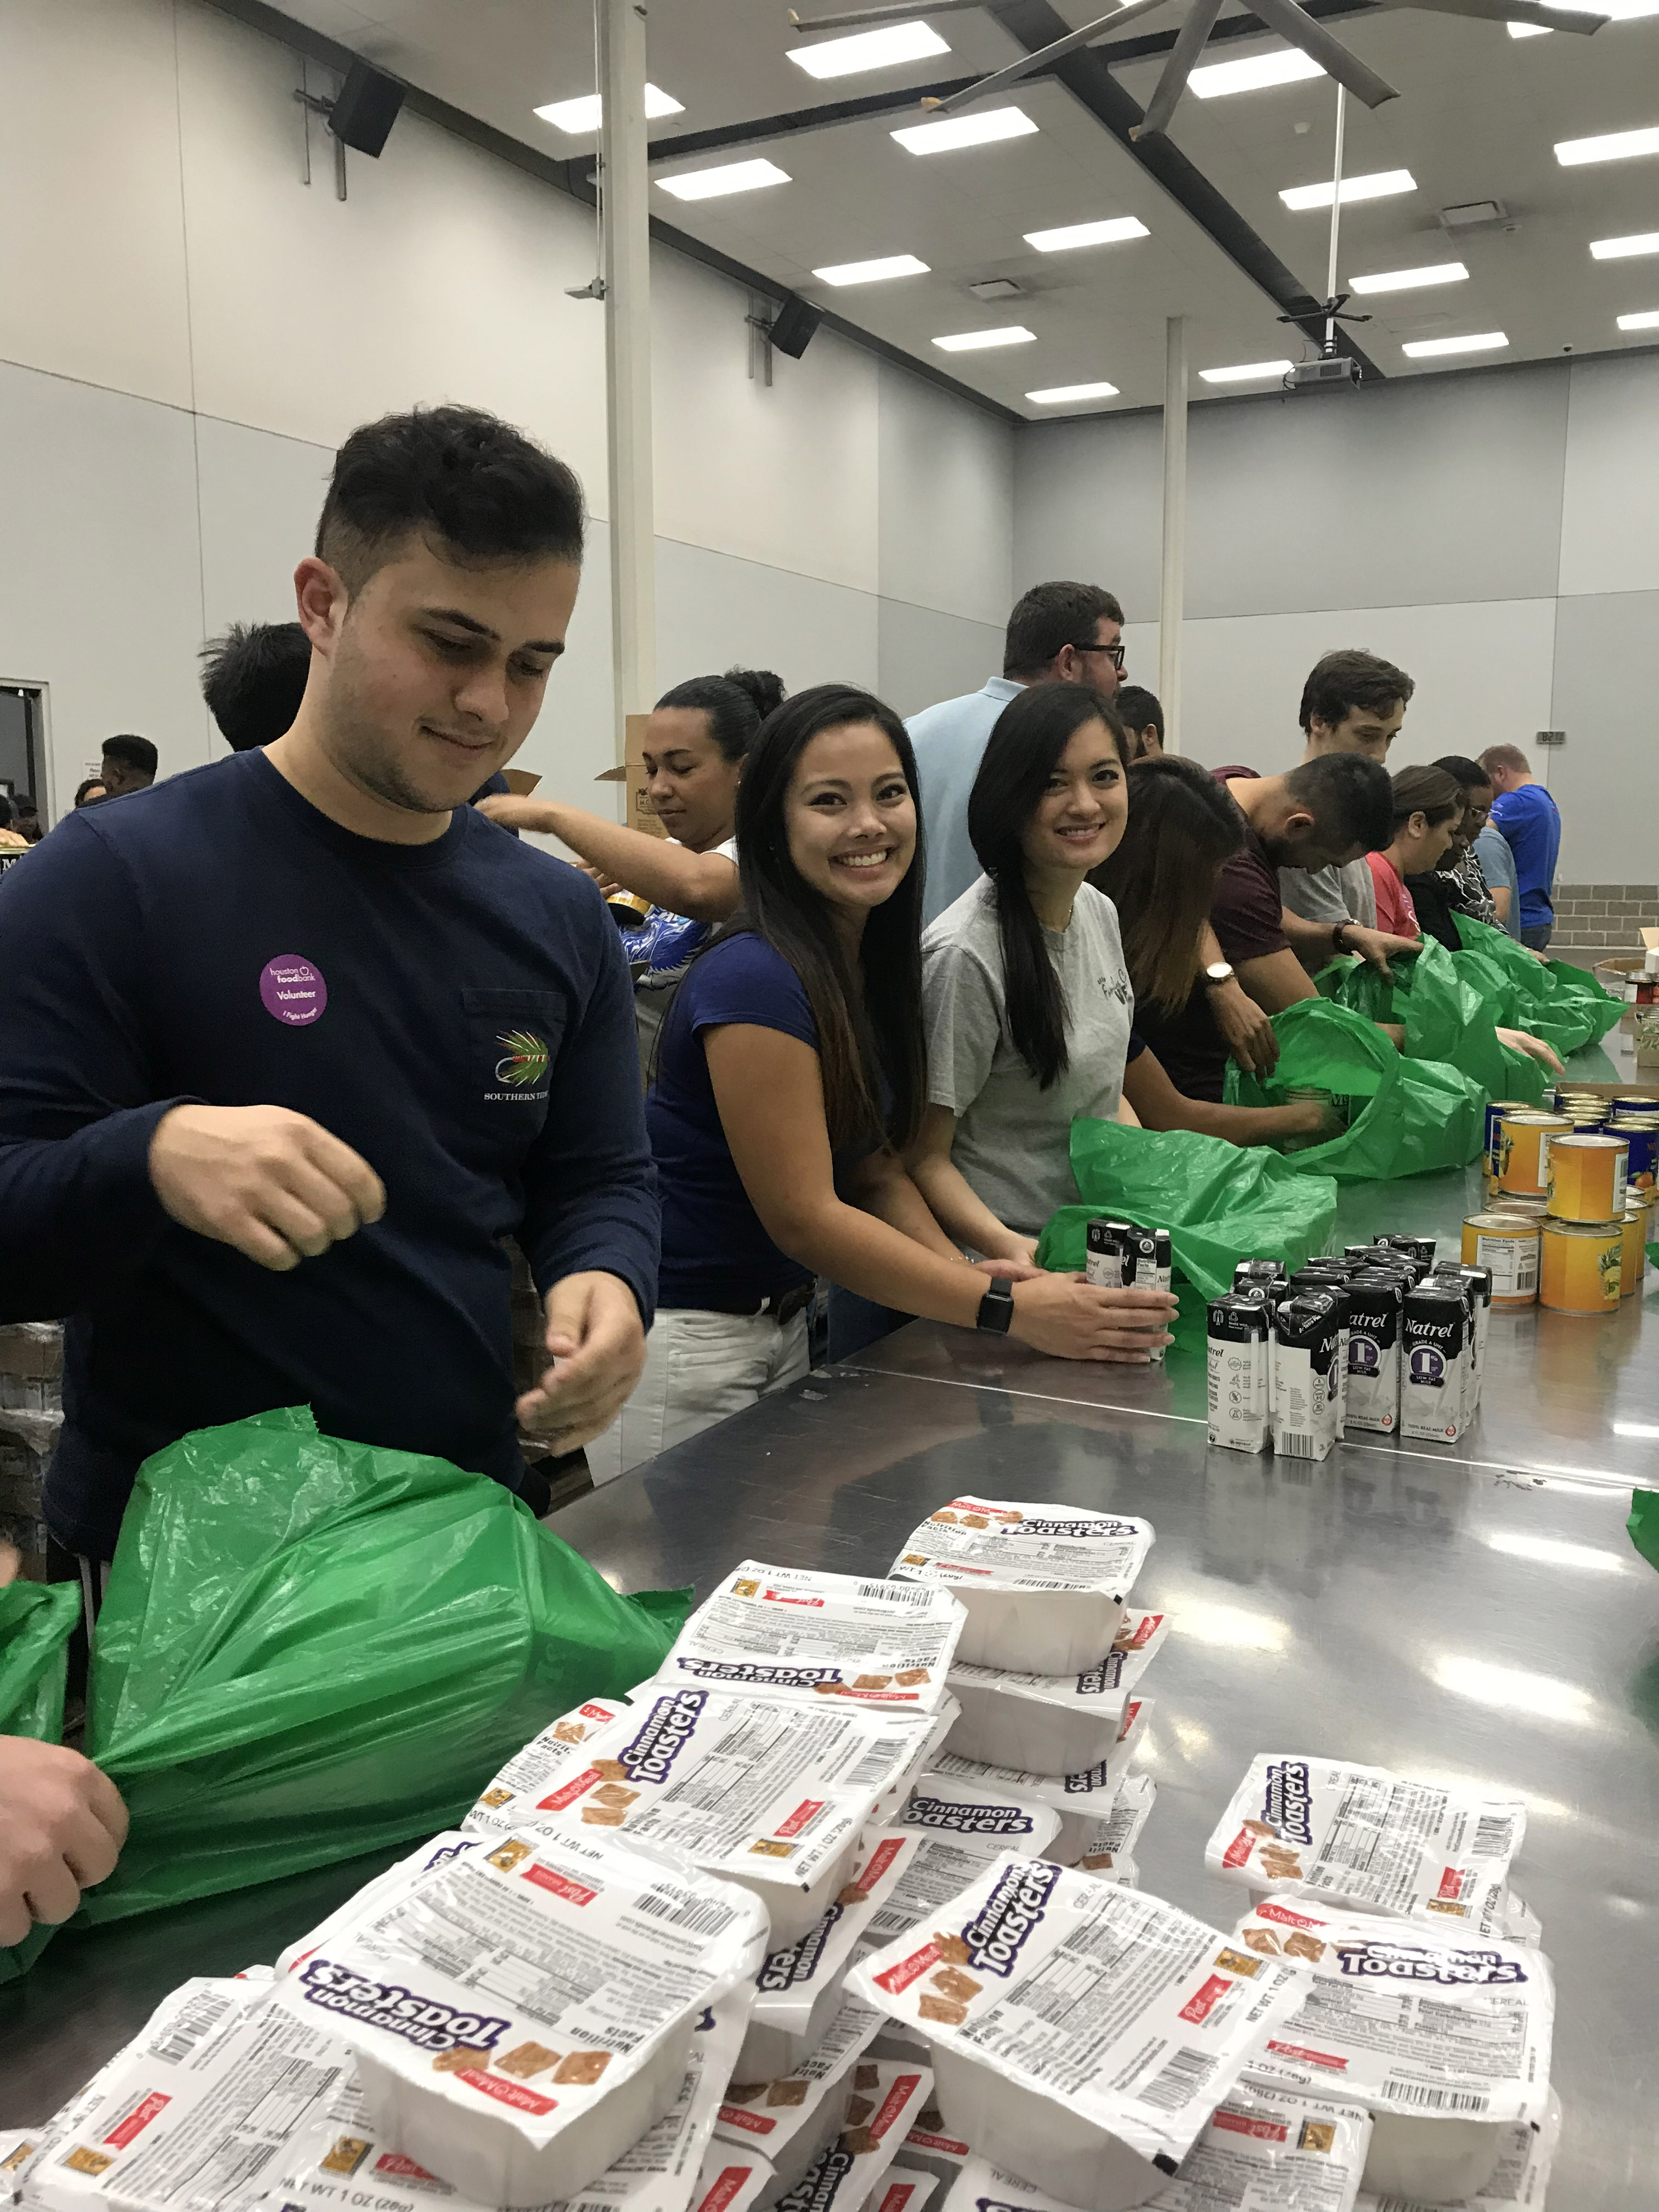 CWRU MSA Houston students in assembly line for packing bags